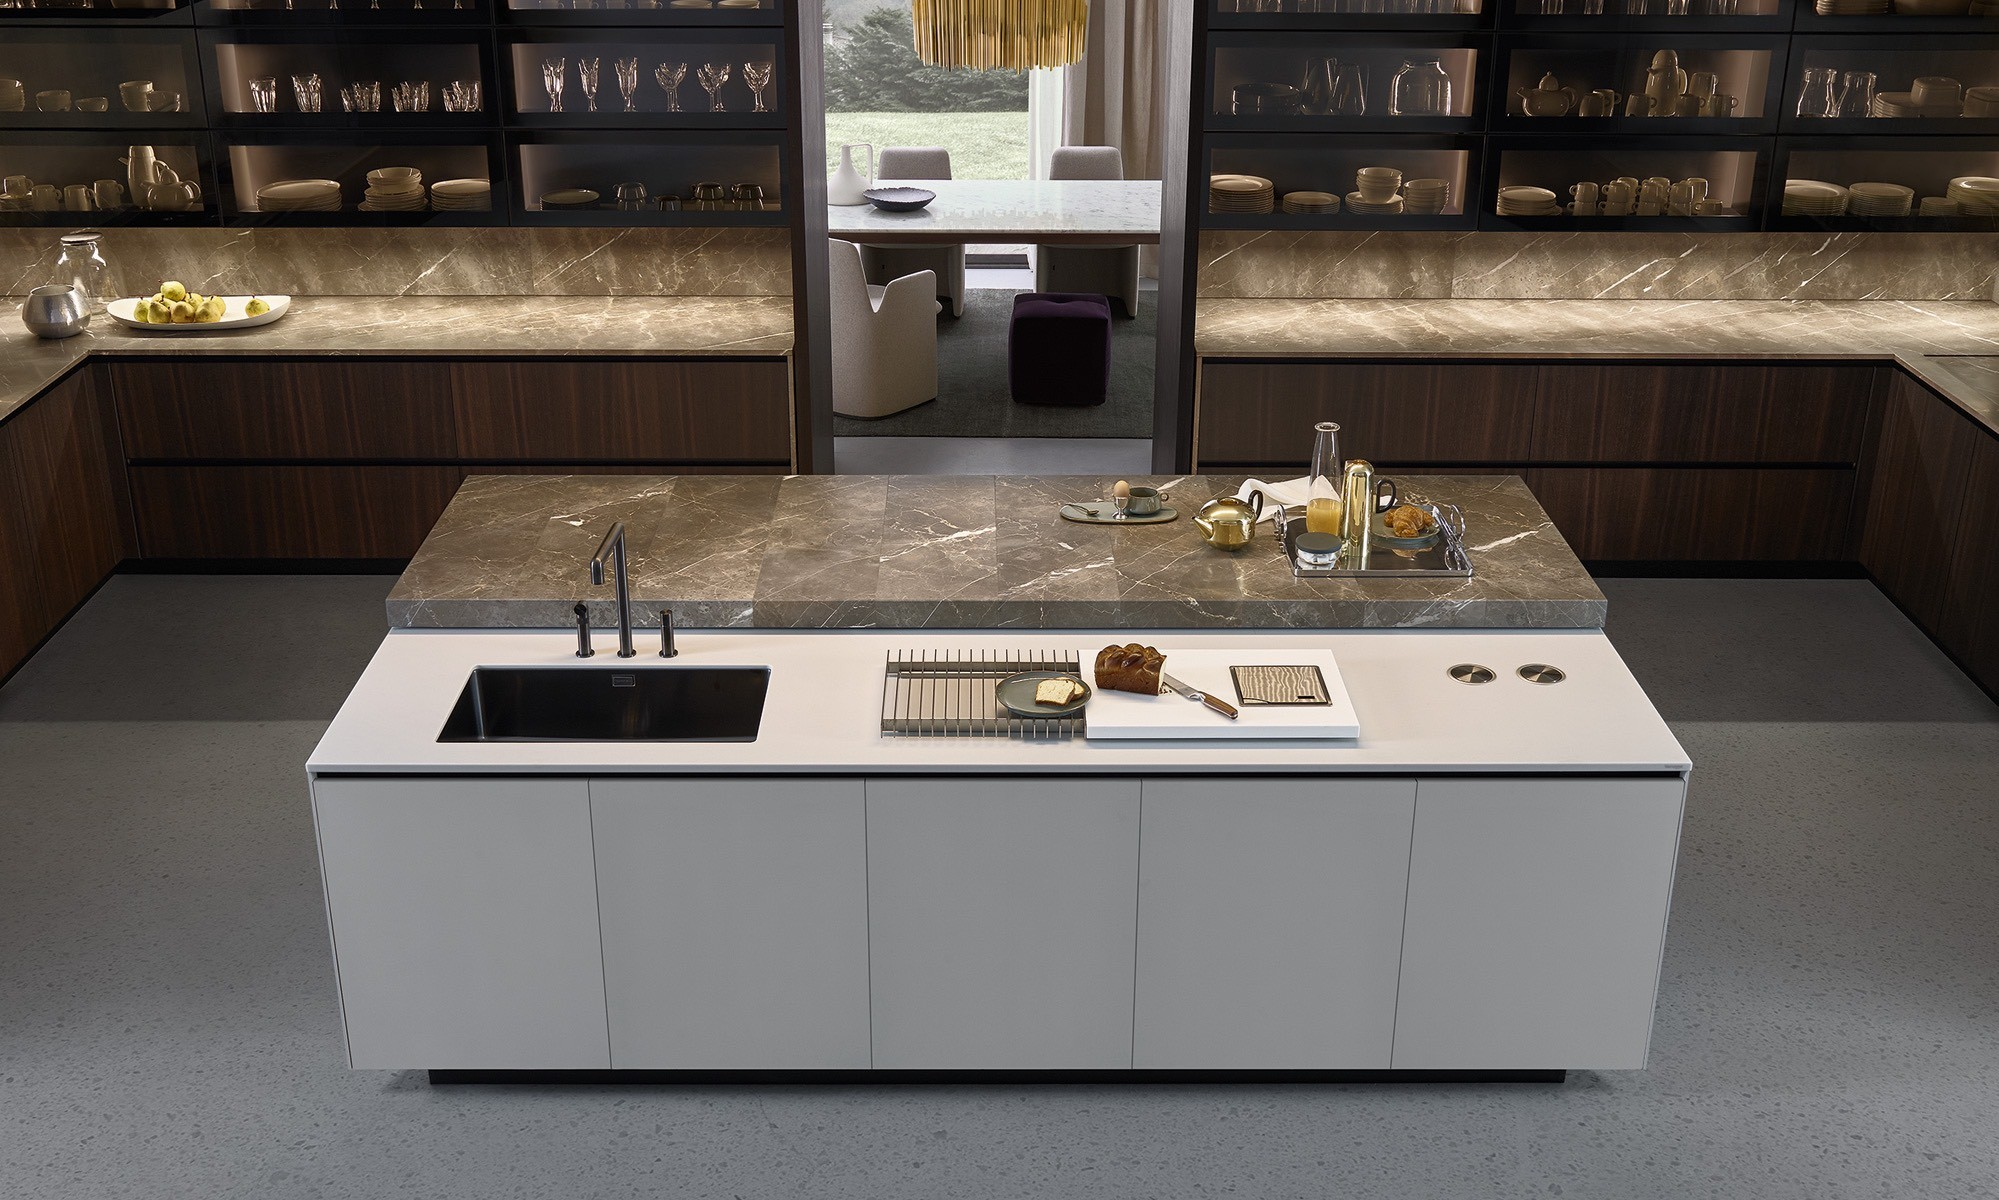 Poliform Kitchen Design. Parking is free for an hour between 9am and 4pm weekdays  We are also open Saturdays by appointment JUST ARRIVED New Bespoke Collections the Day